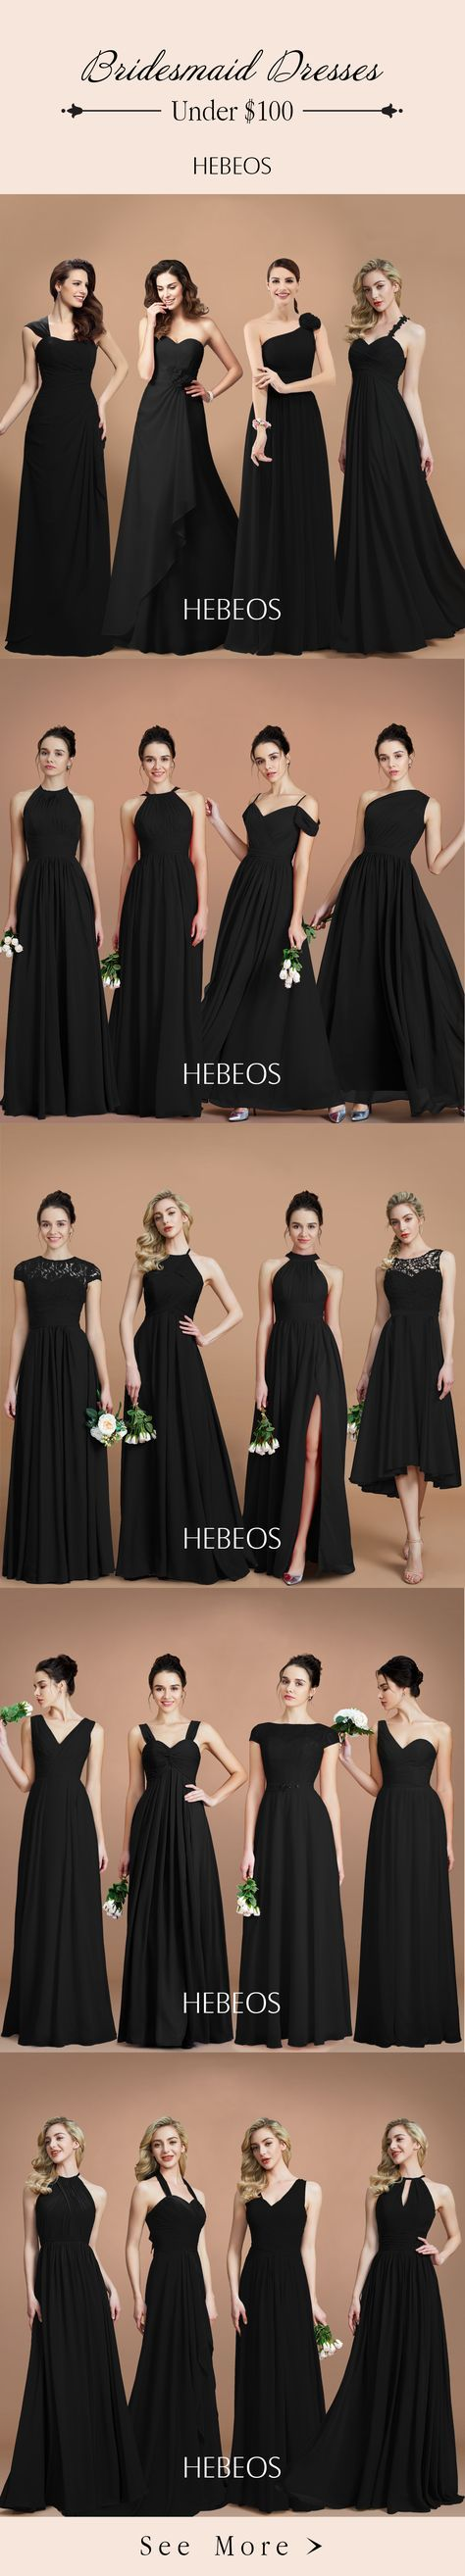 Black Bridesmaid Dresses. Bridesmaid dresses in your perfect wedding colors! Beautiful fabrics and nearly 200 color options let you mix and match bridesmaid styles from all HEBEOS collections. Buy your cheap bridesmaid dresses in hebeos.com #bridesmaiddresses #mixmatch